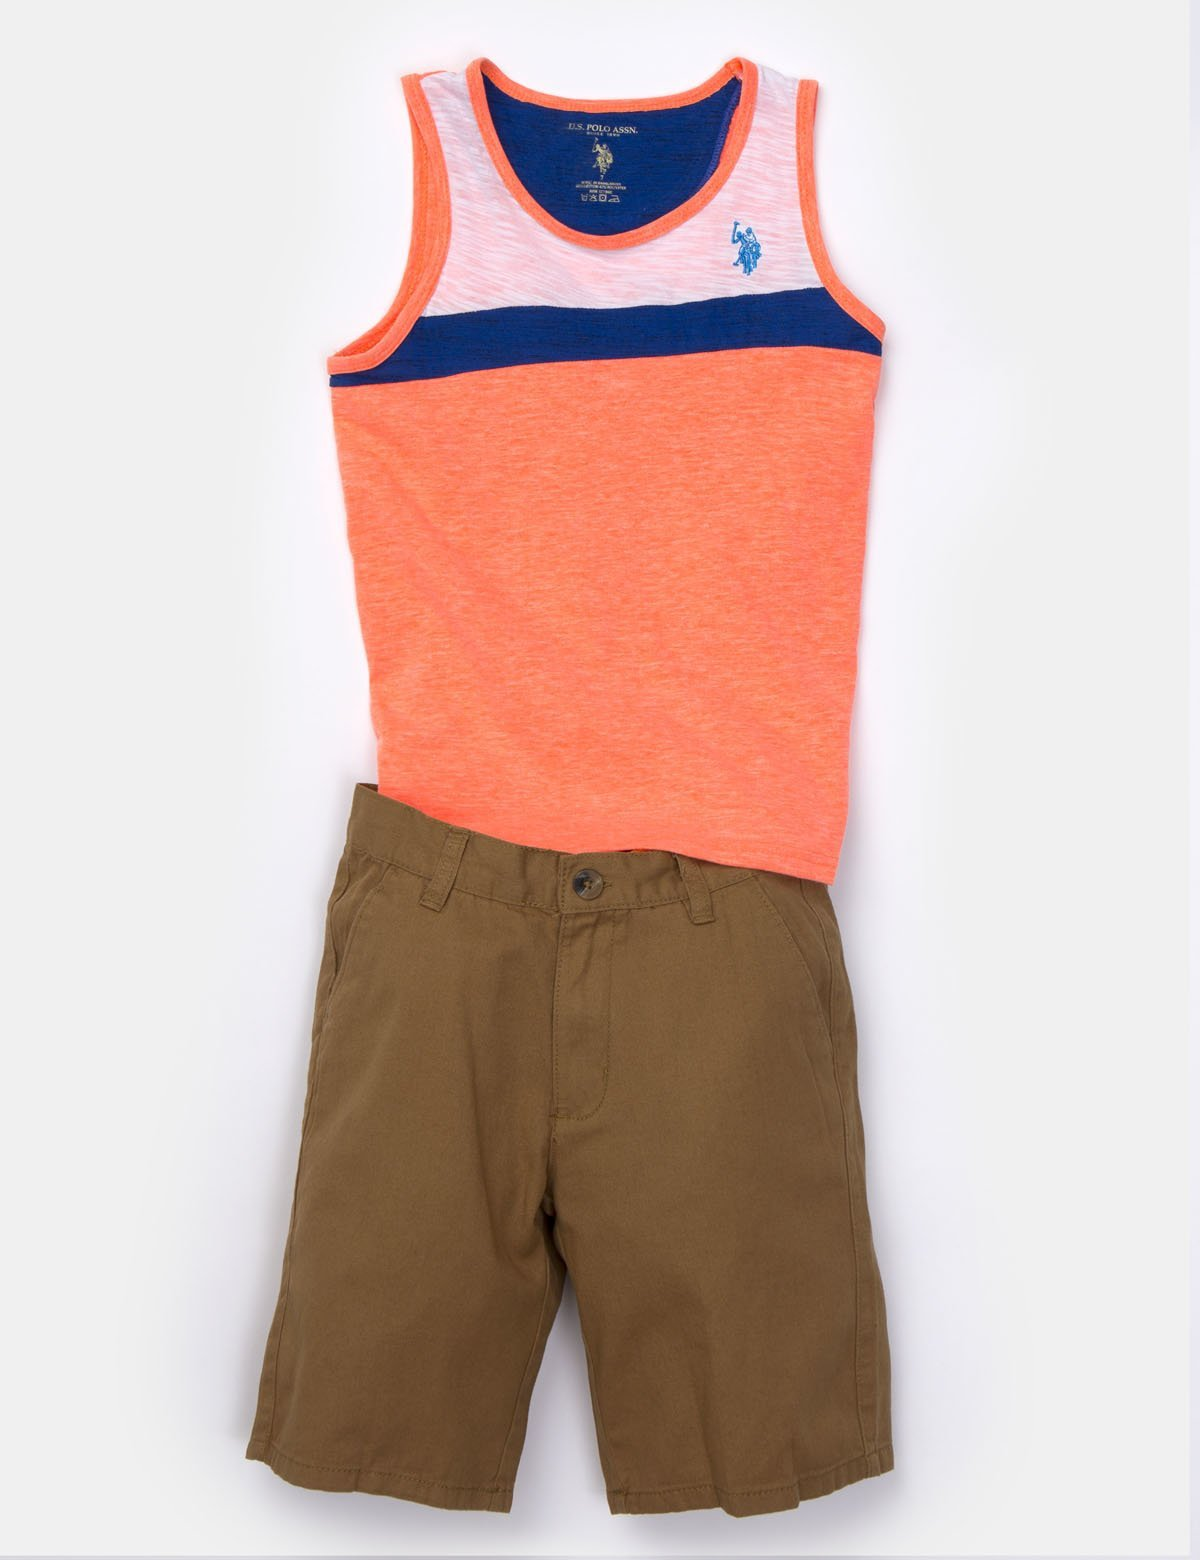 TODDLER 2 PIECE SET - TANK & SHORTS